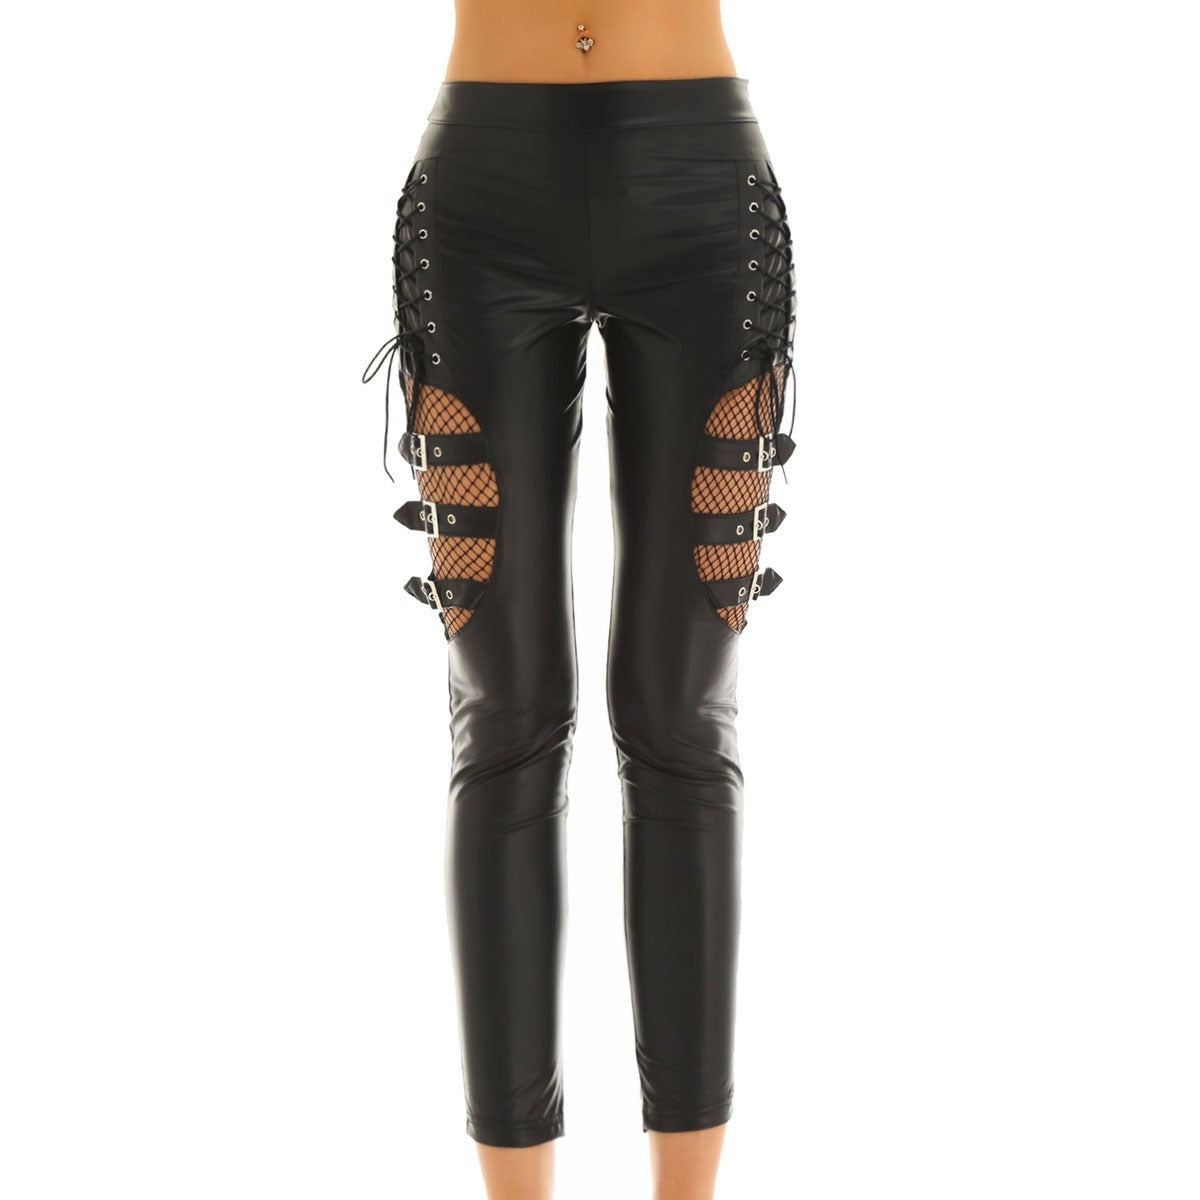 Women's Black Faux Leather Pants / Slim Stretchy Trousers in Black / Long Steampunk Fashion Pants - HARD'N'HEAVY